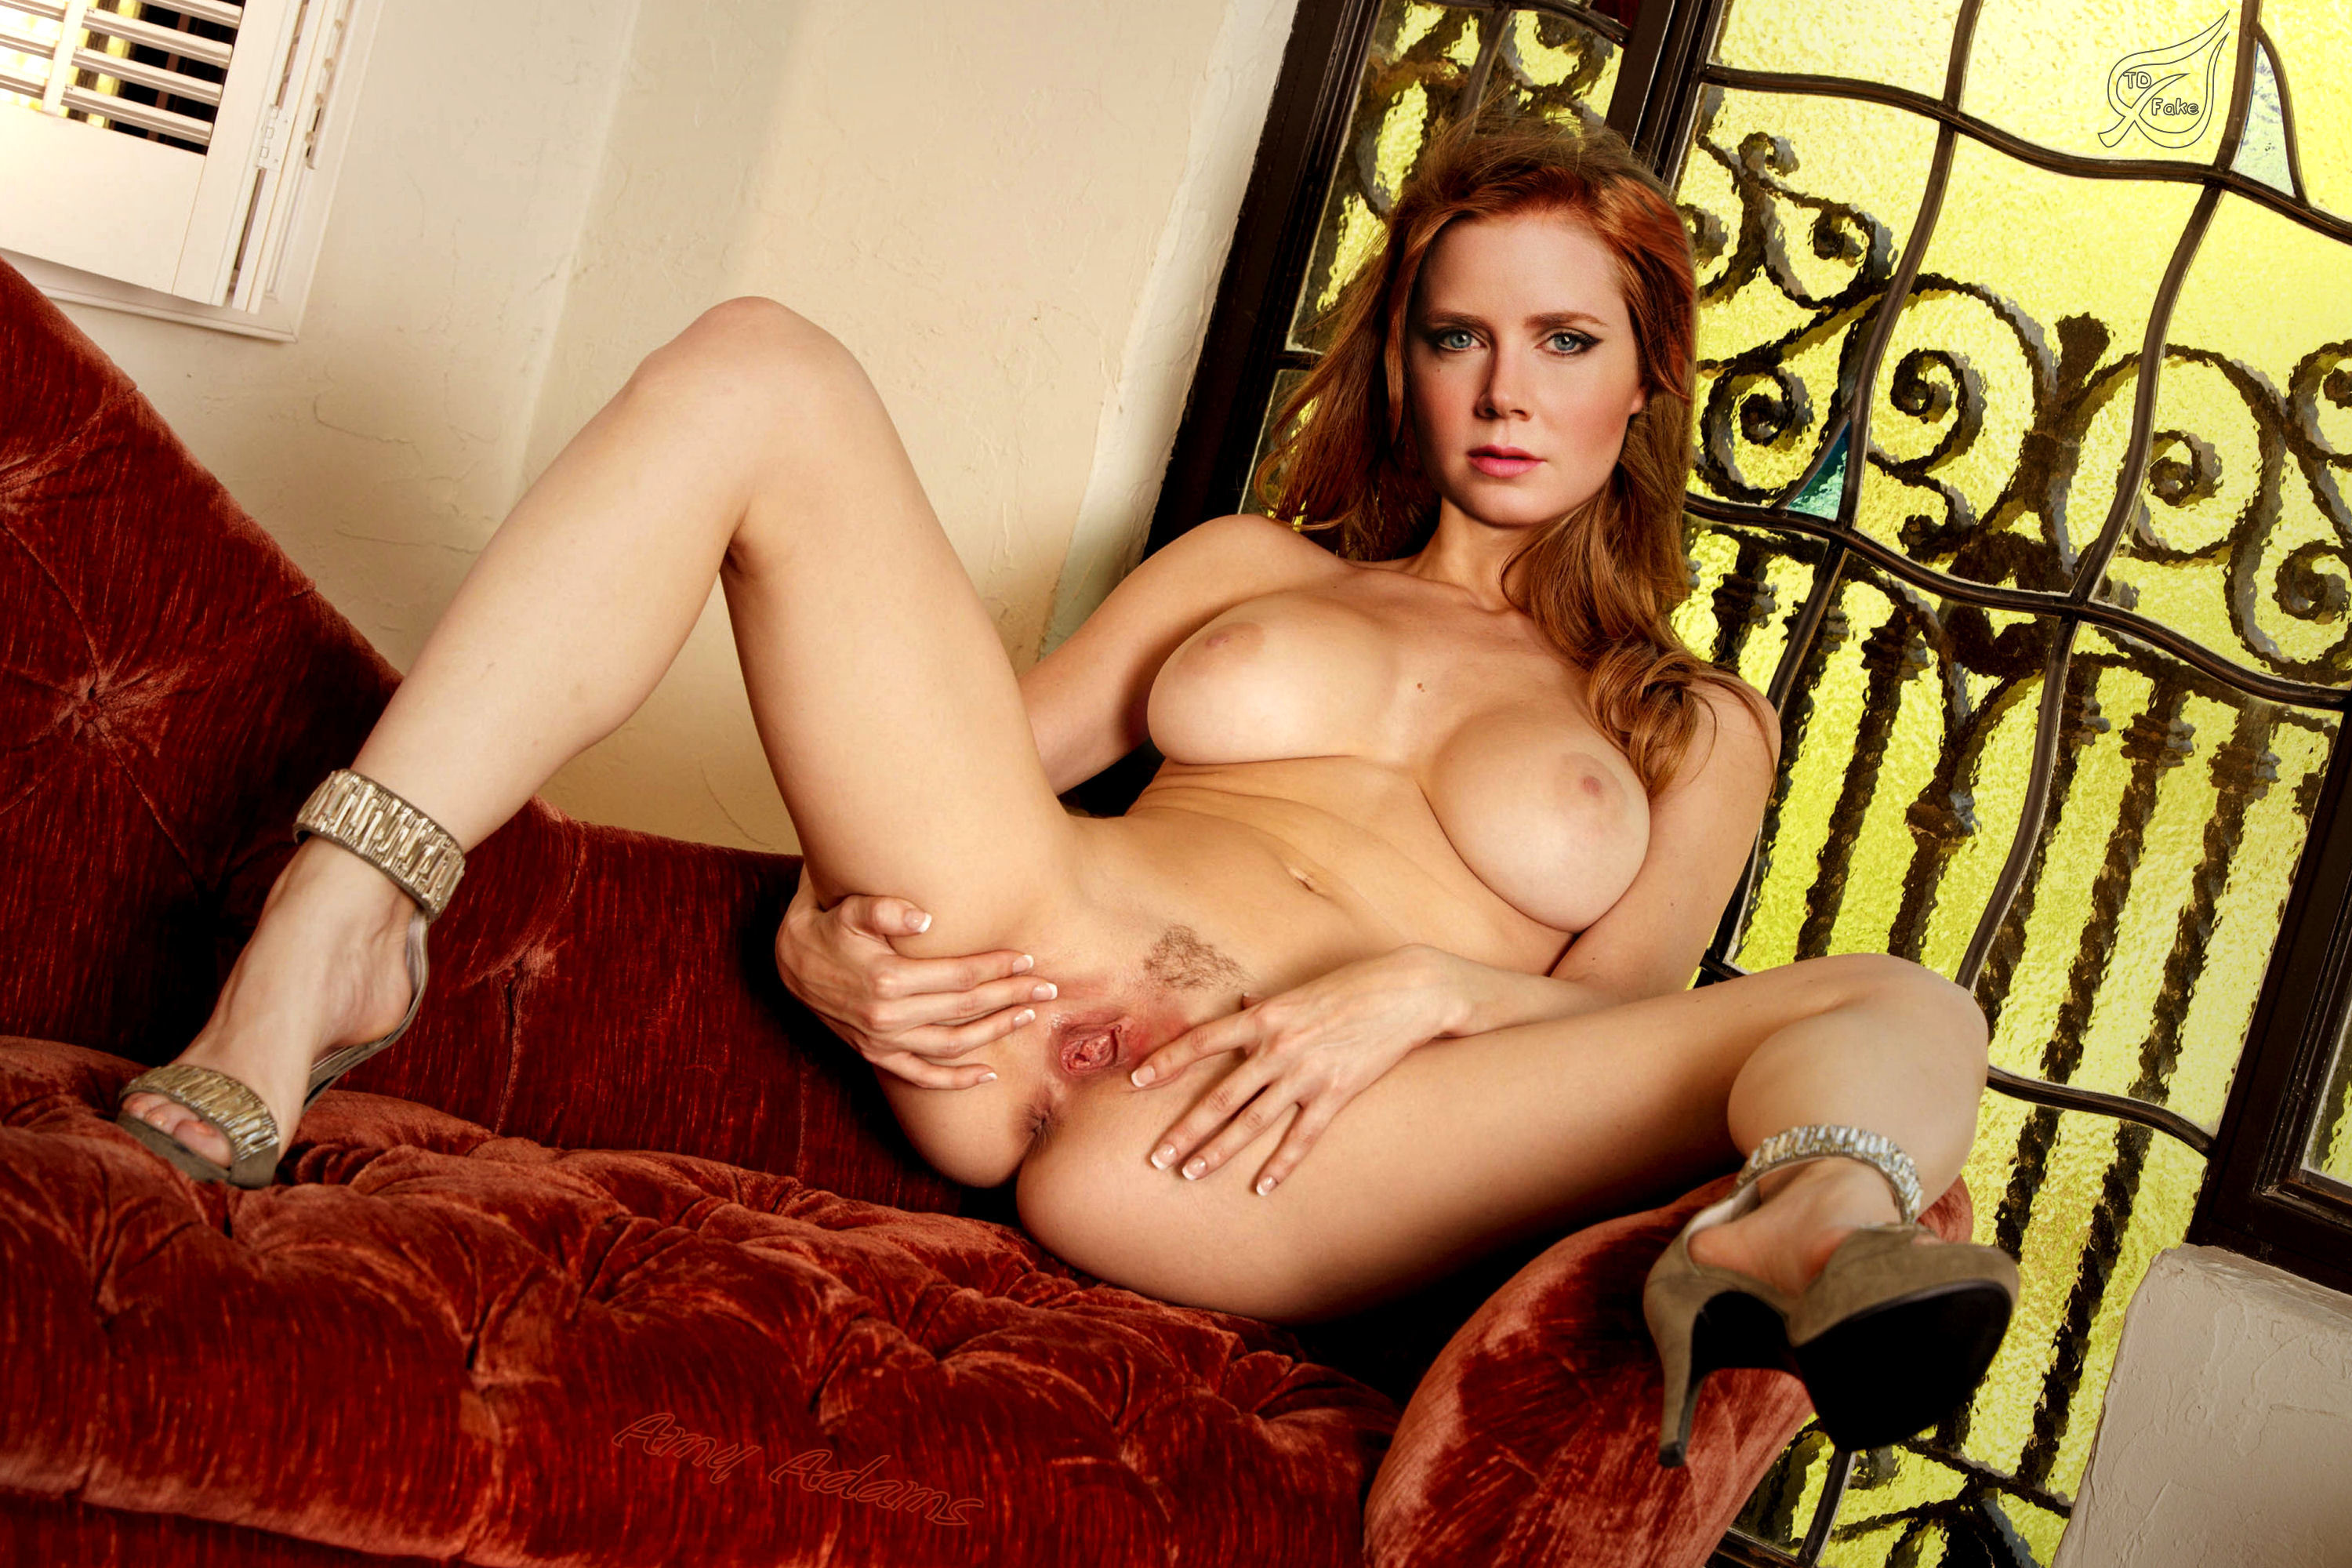 XXX Amy Adams nude (67 foto and video), Sexy, Sideboobs, Feet, panties 2018